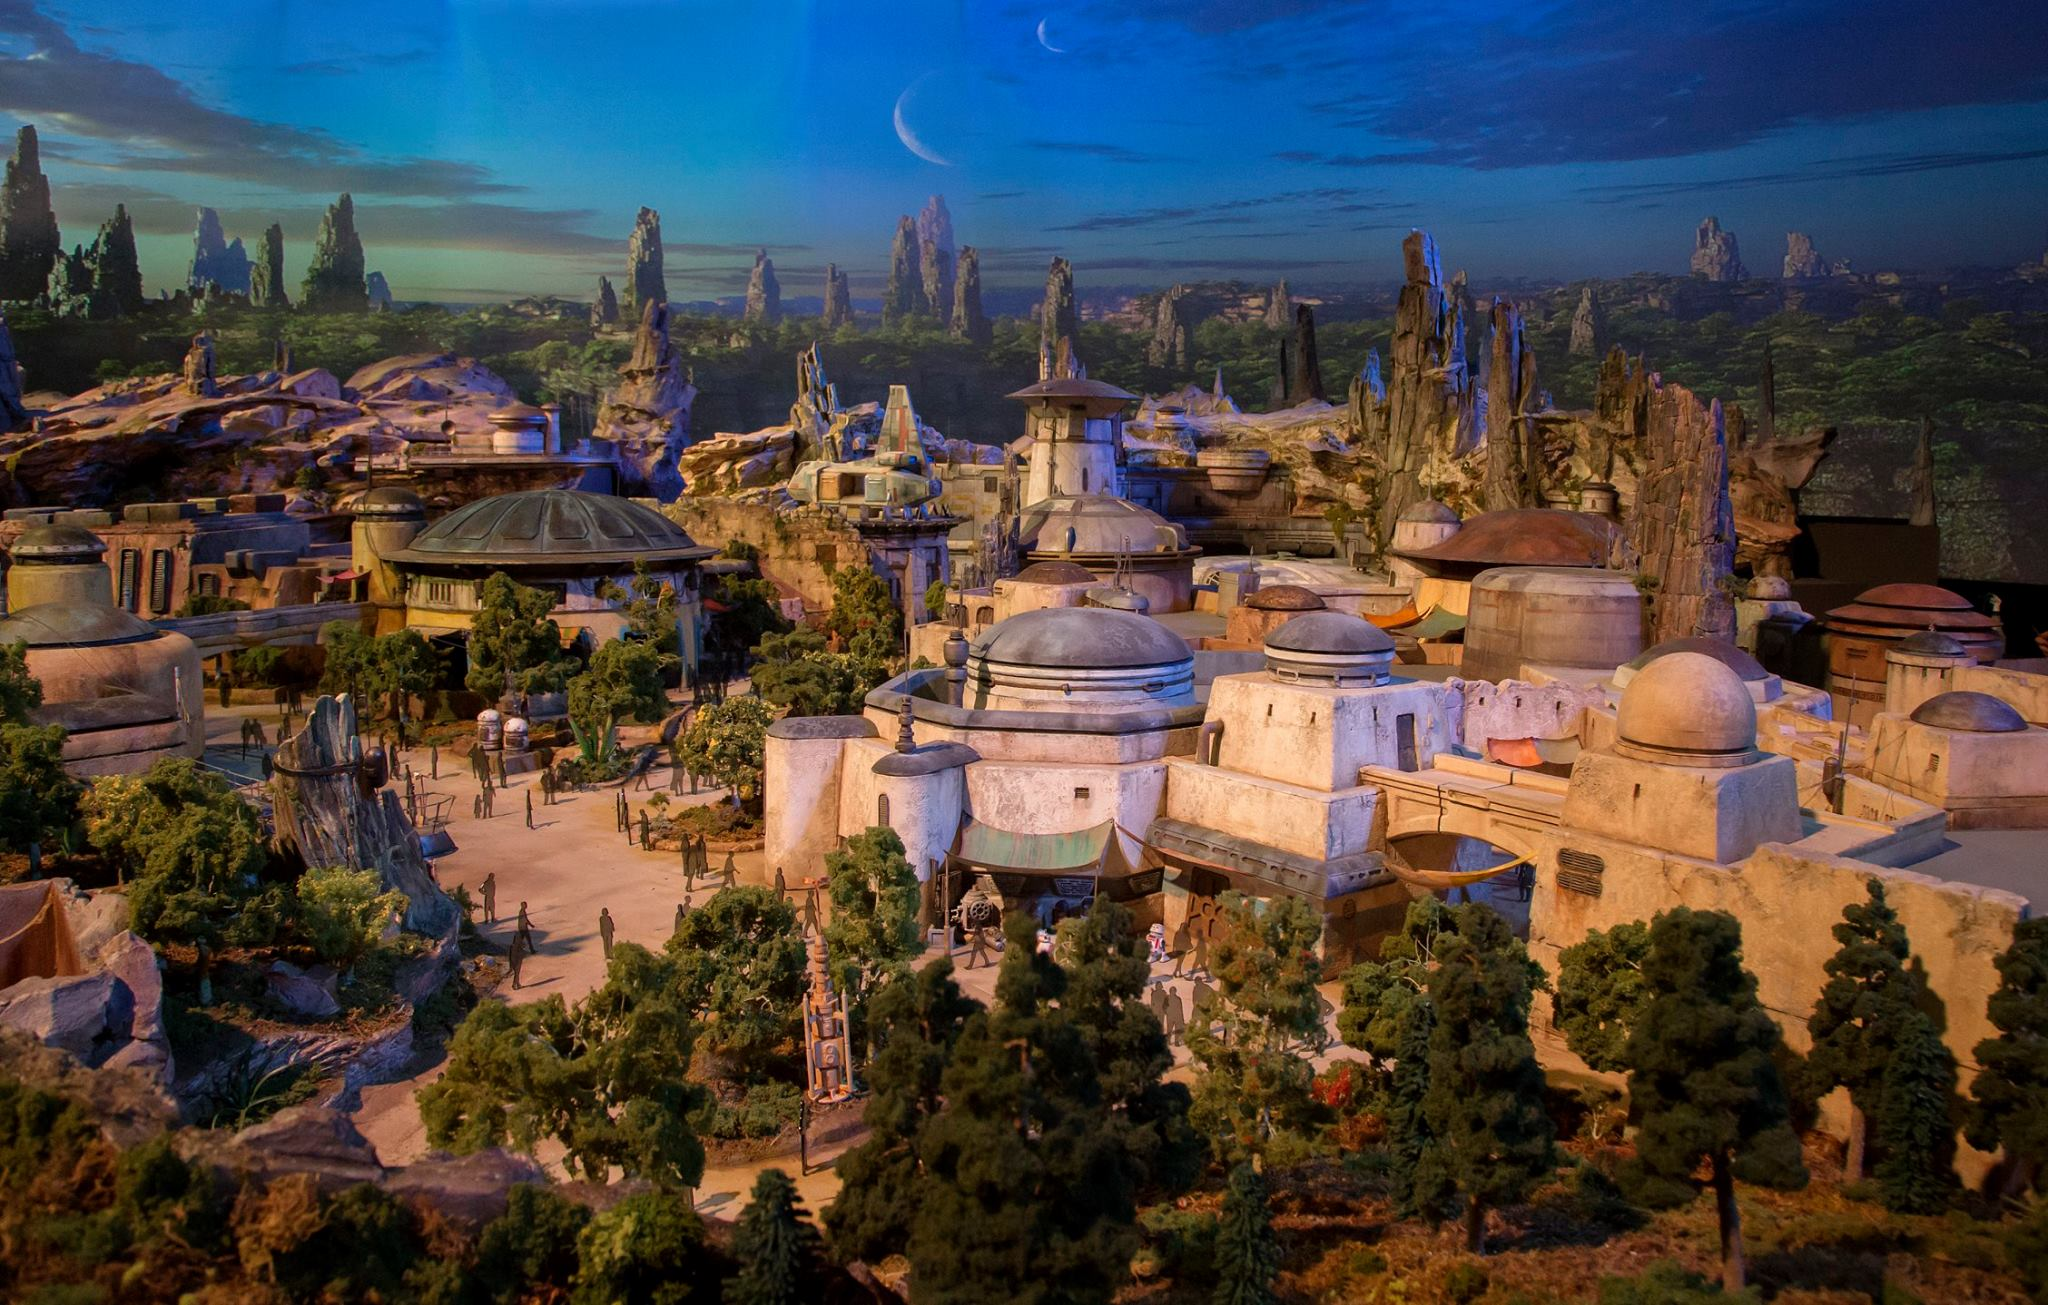 disney-reveals-incredibly-cool-full-star-wars-land-model-at-d23-expo9.jpeg